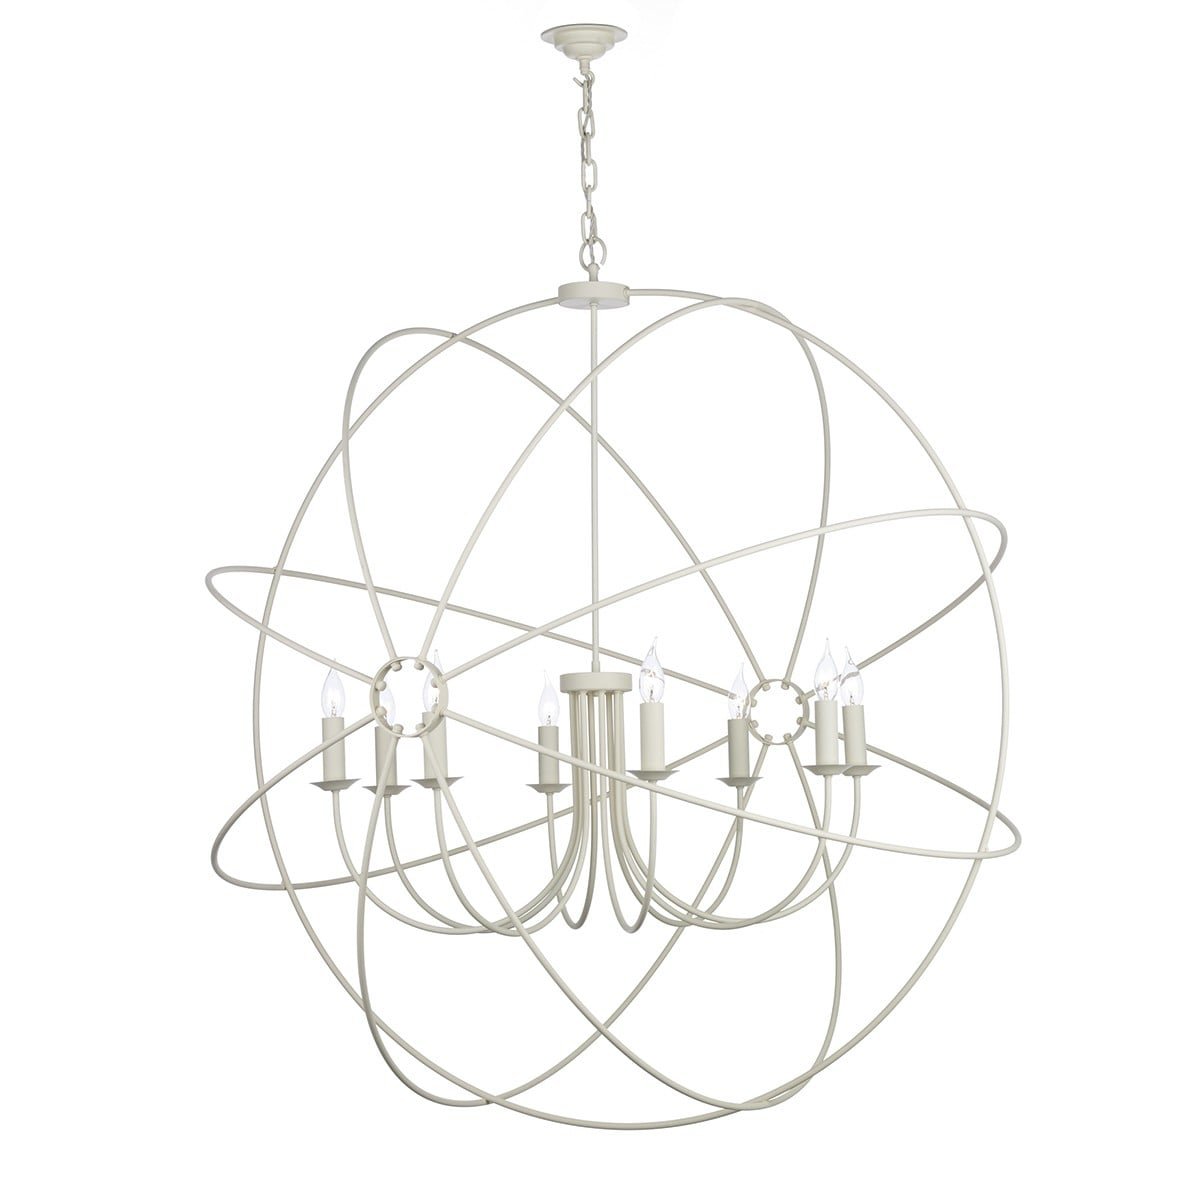 David Hunt Lighting ORB0833 Orb 8 Light Pendant in Cream Finish